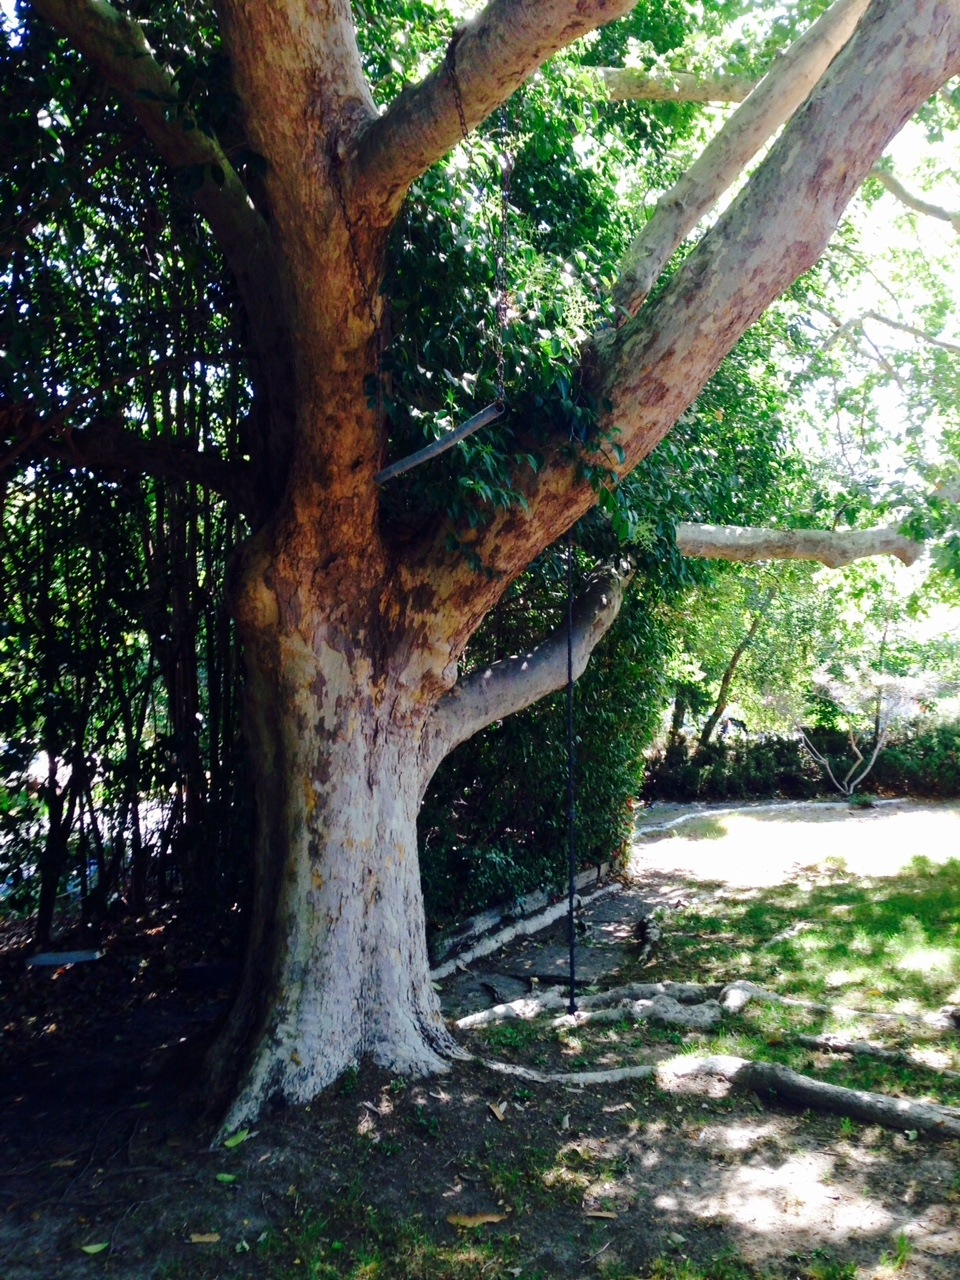 65 Year Old Sycamore Tree